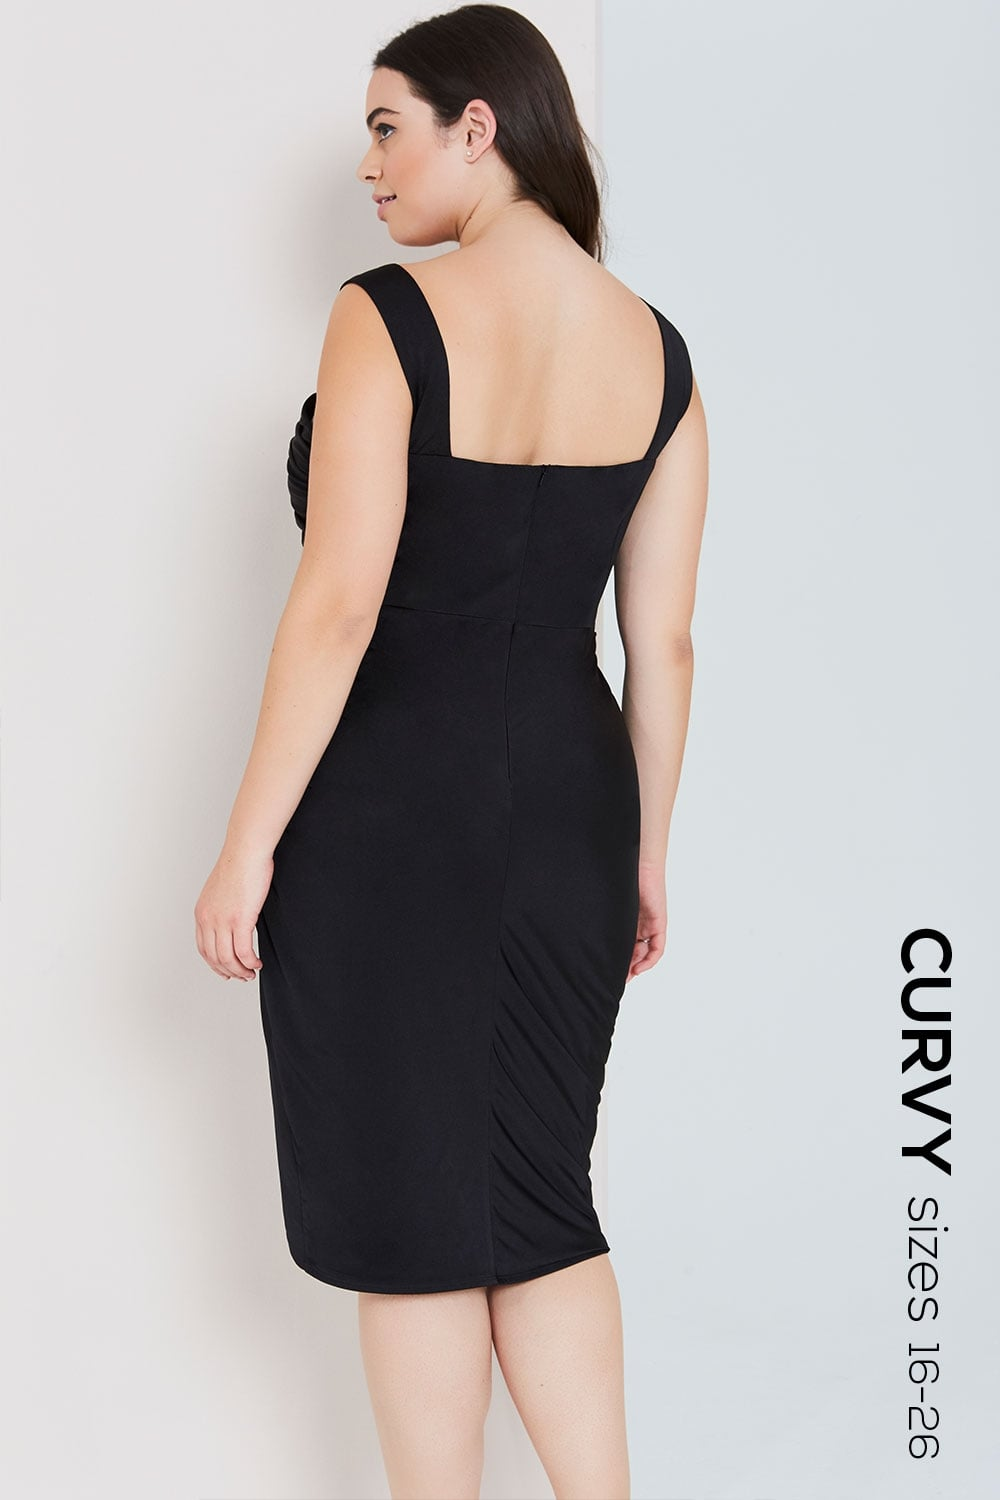 Black Ruched Midi Dress With Embellished Waist From